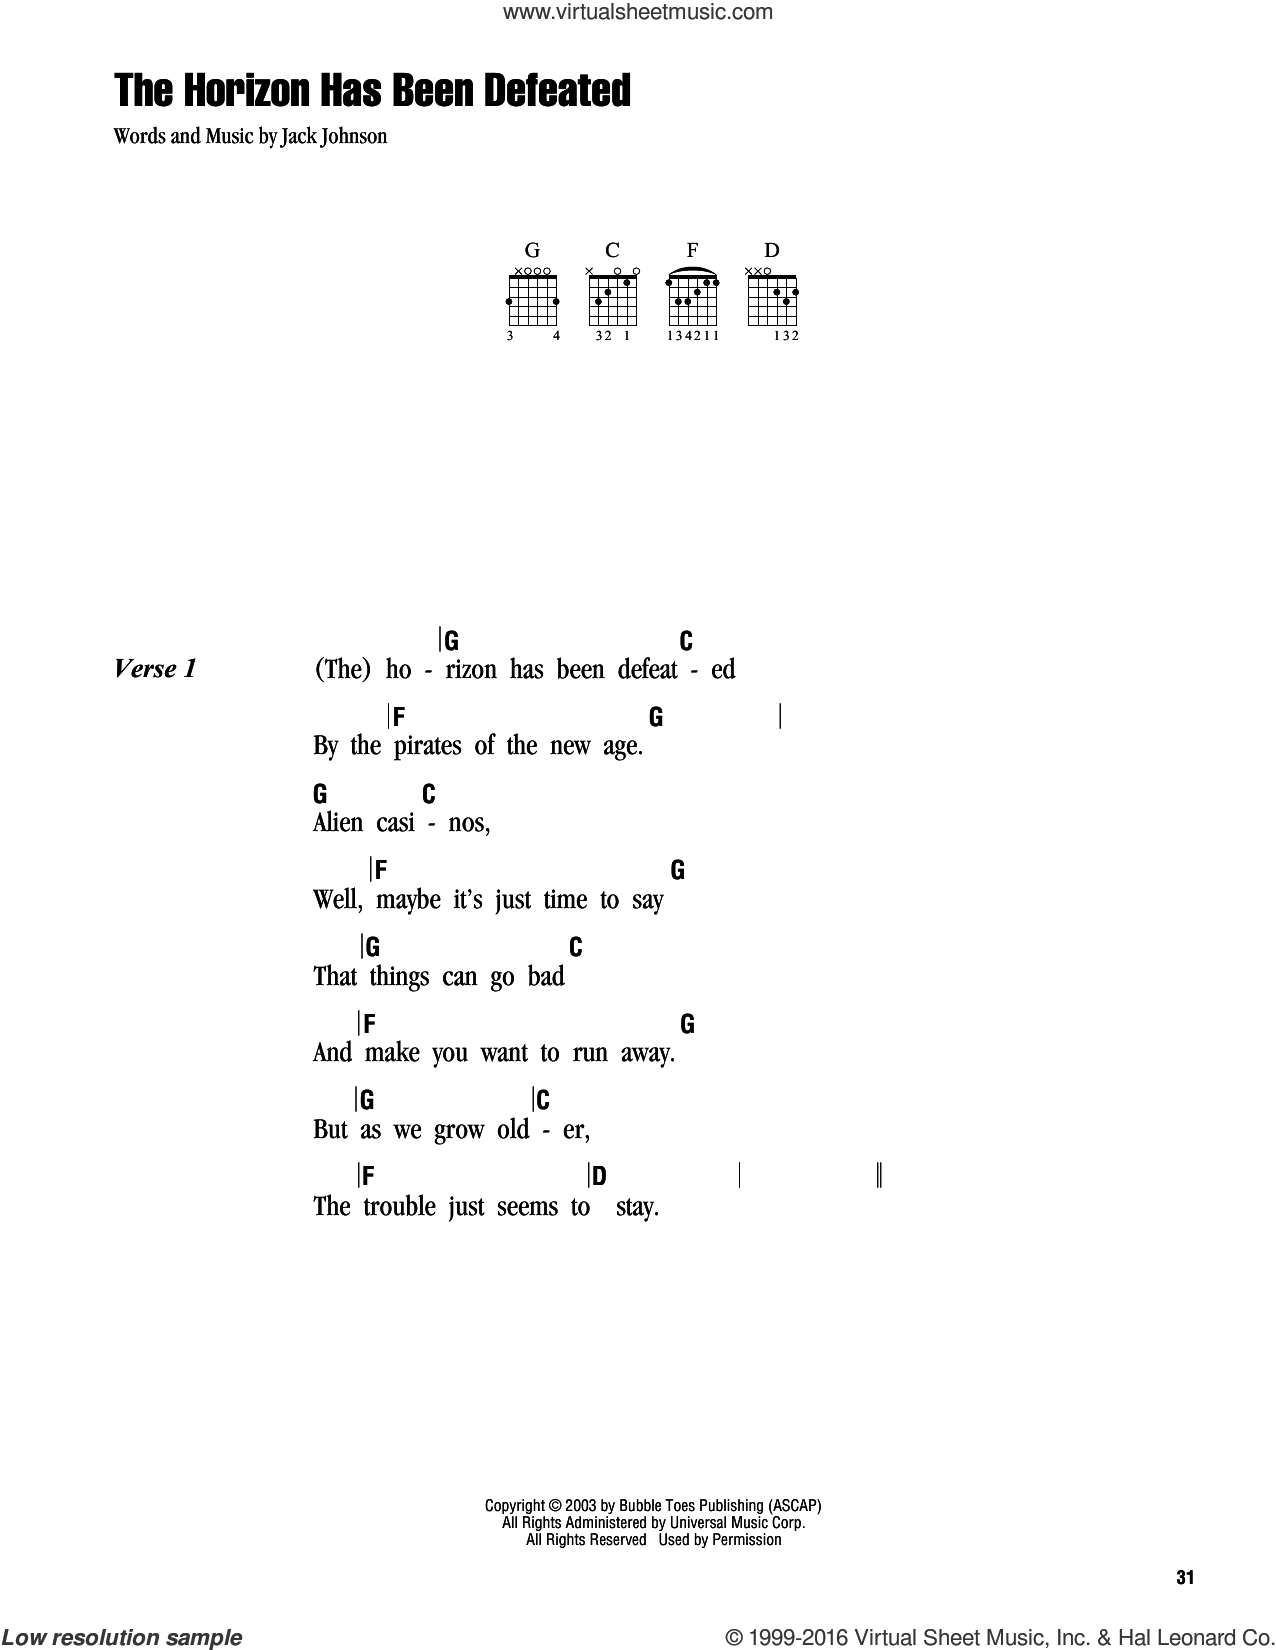 The Horizon Has Been Defeated sheet music for guitar (chords) by Jack Johnson, intermediate skill level